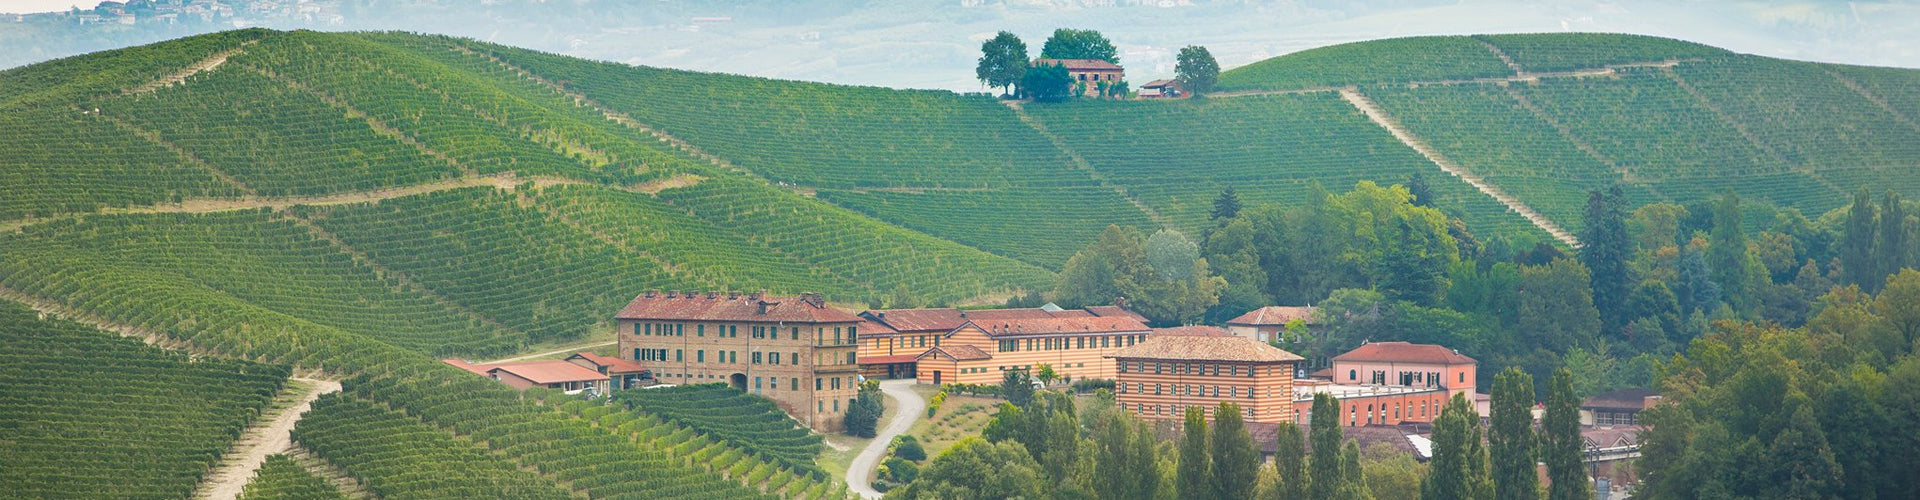 Fontanfredda Winery and Vineyards in the Serralunga d'Alba, Piemonte - Italy